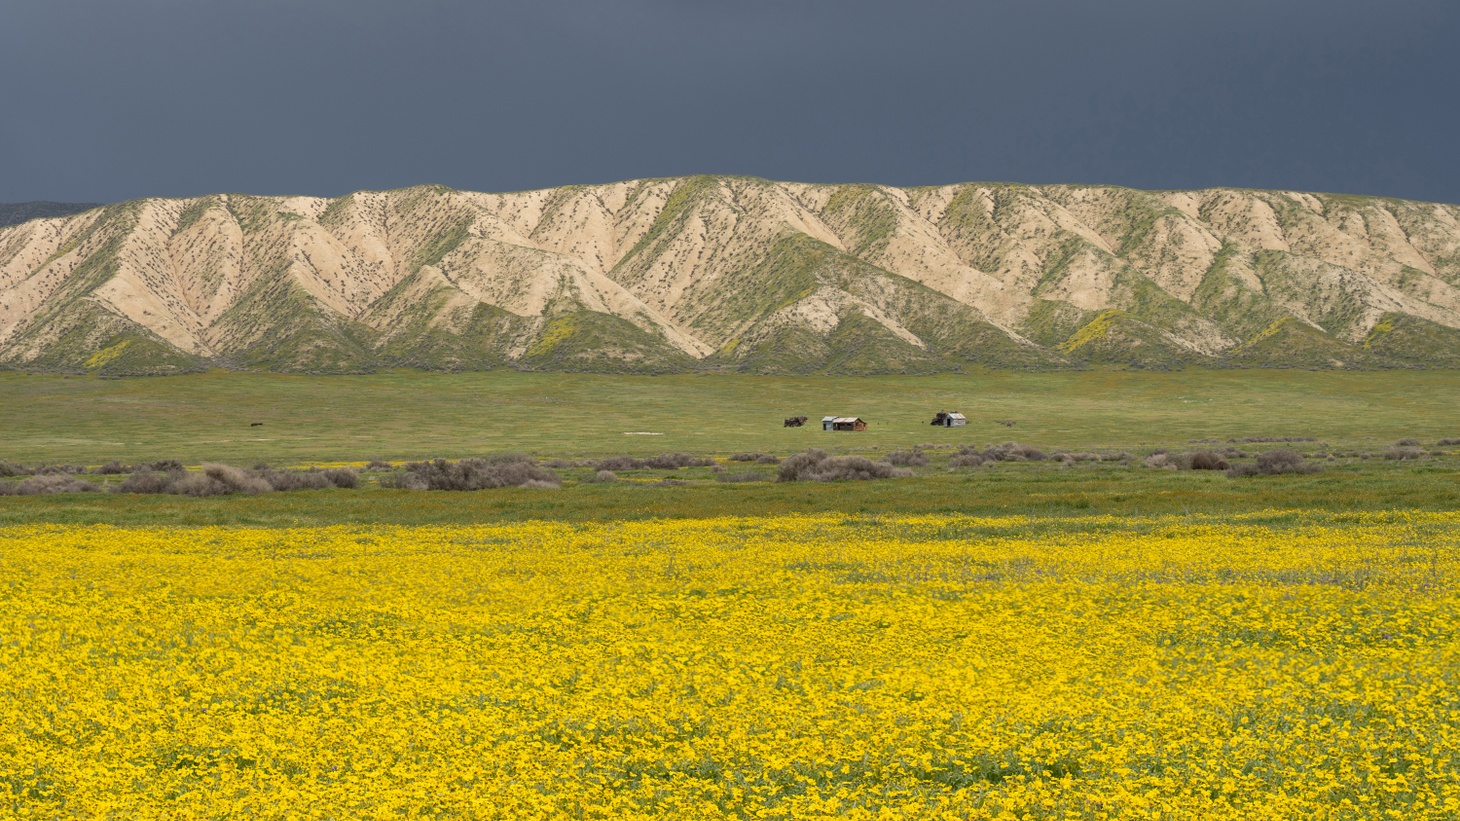 A recent super bloom at the Carrizo Plain National Monument.